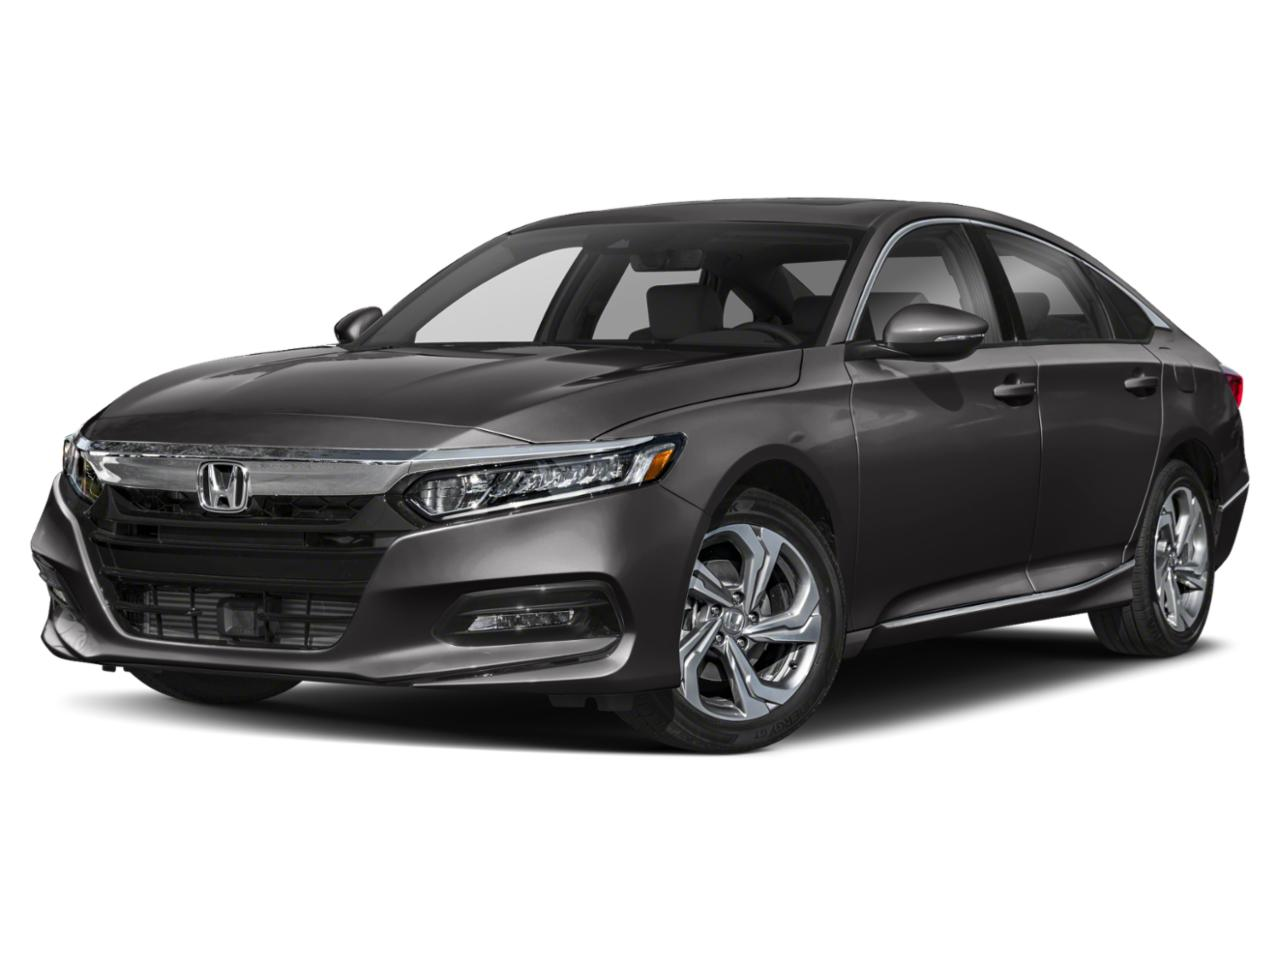 2019 Honda Accord Sedan Vehicle Photo in Lewisville, TX 75067